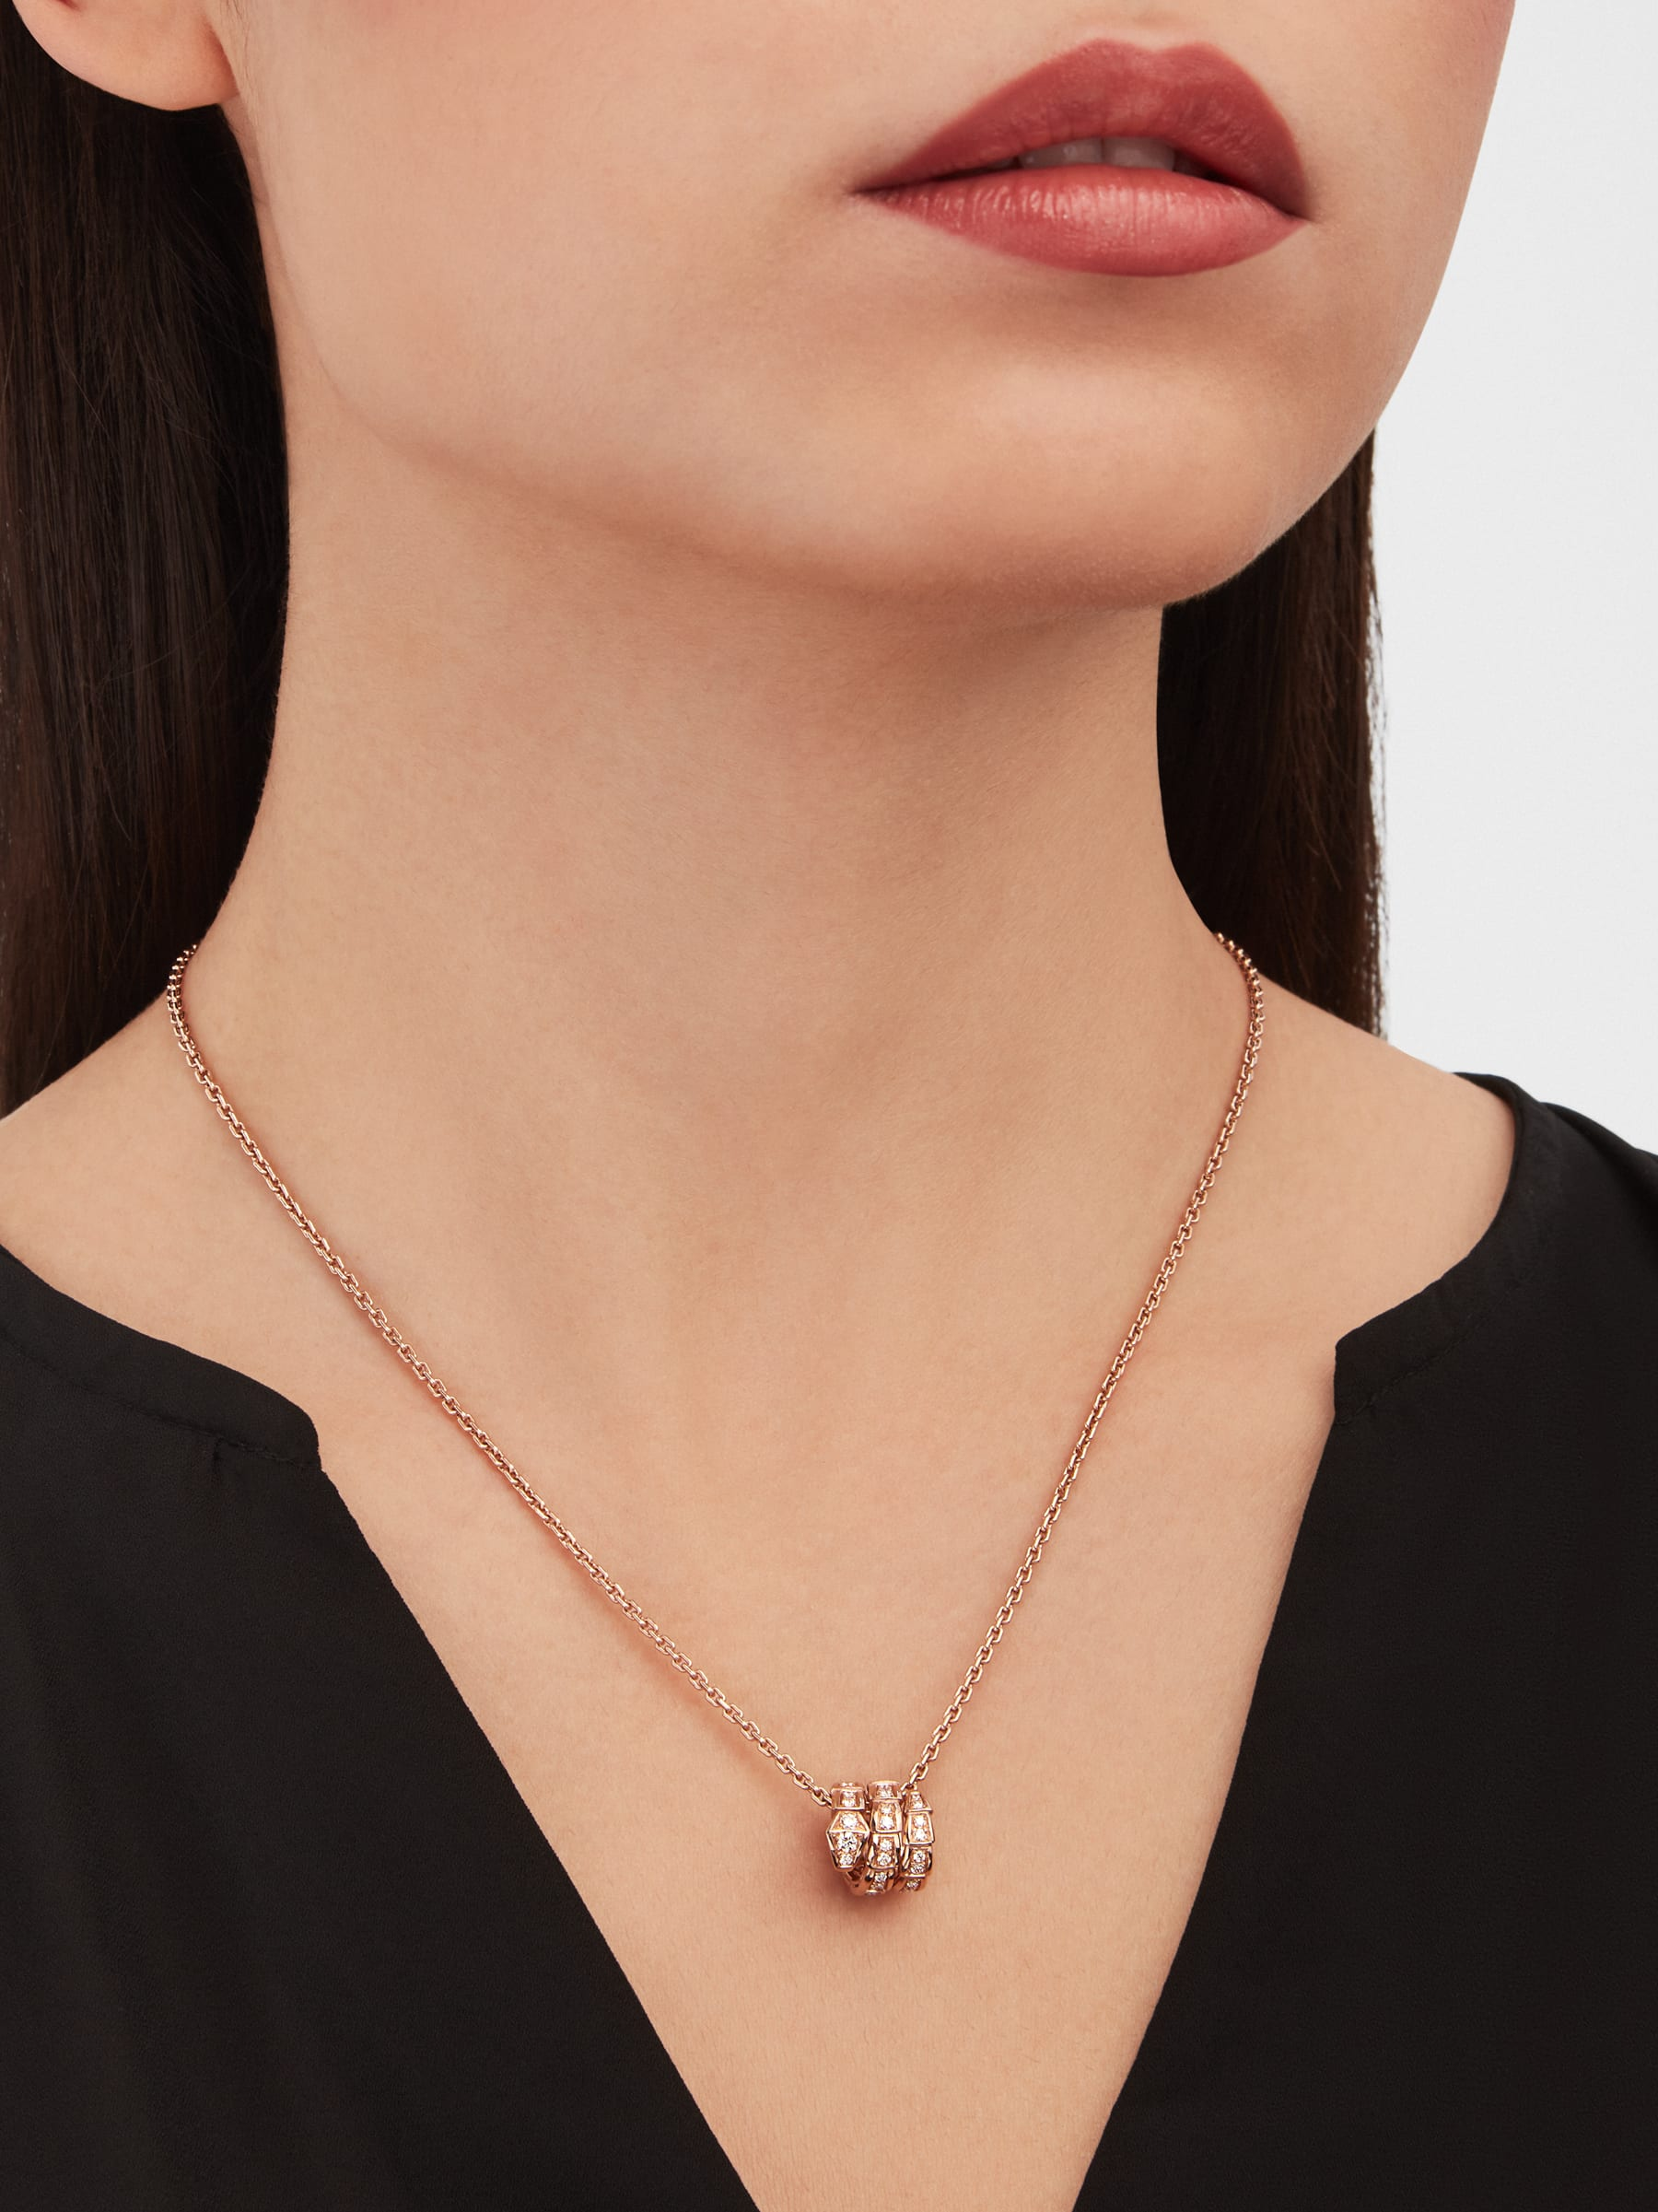 Serpenti Viper pendant necklace in 18 kt rose gold, set with pavé diamonds 357795 image 2